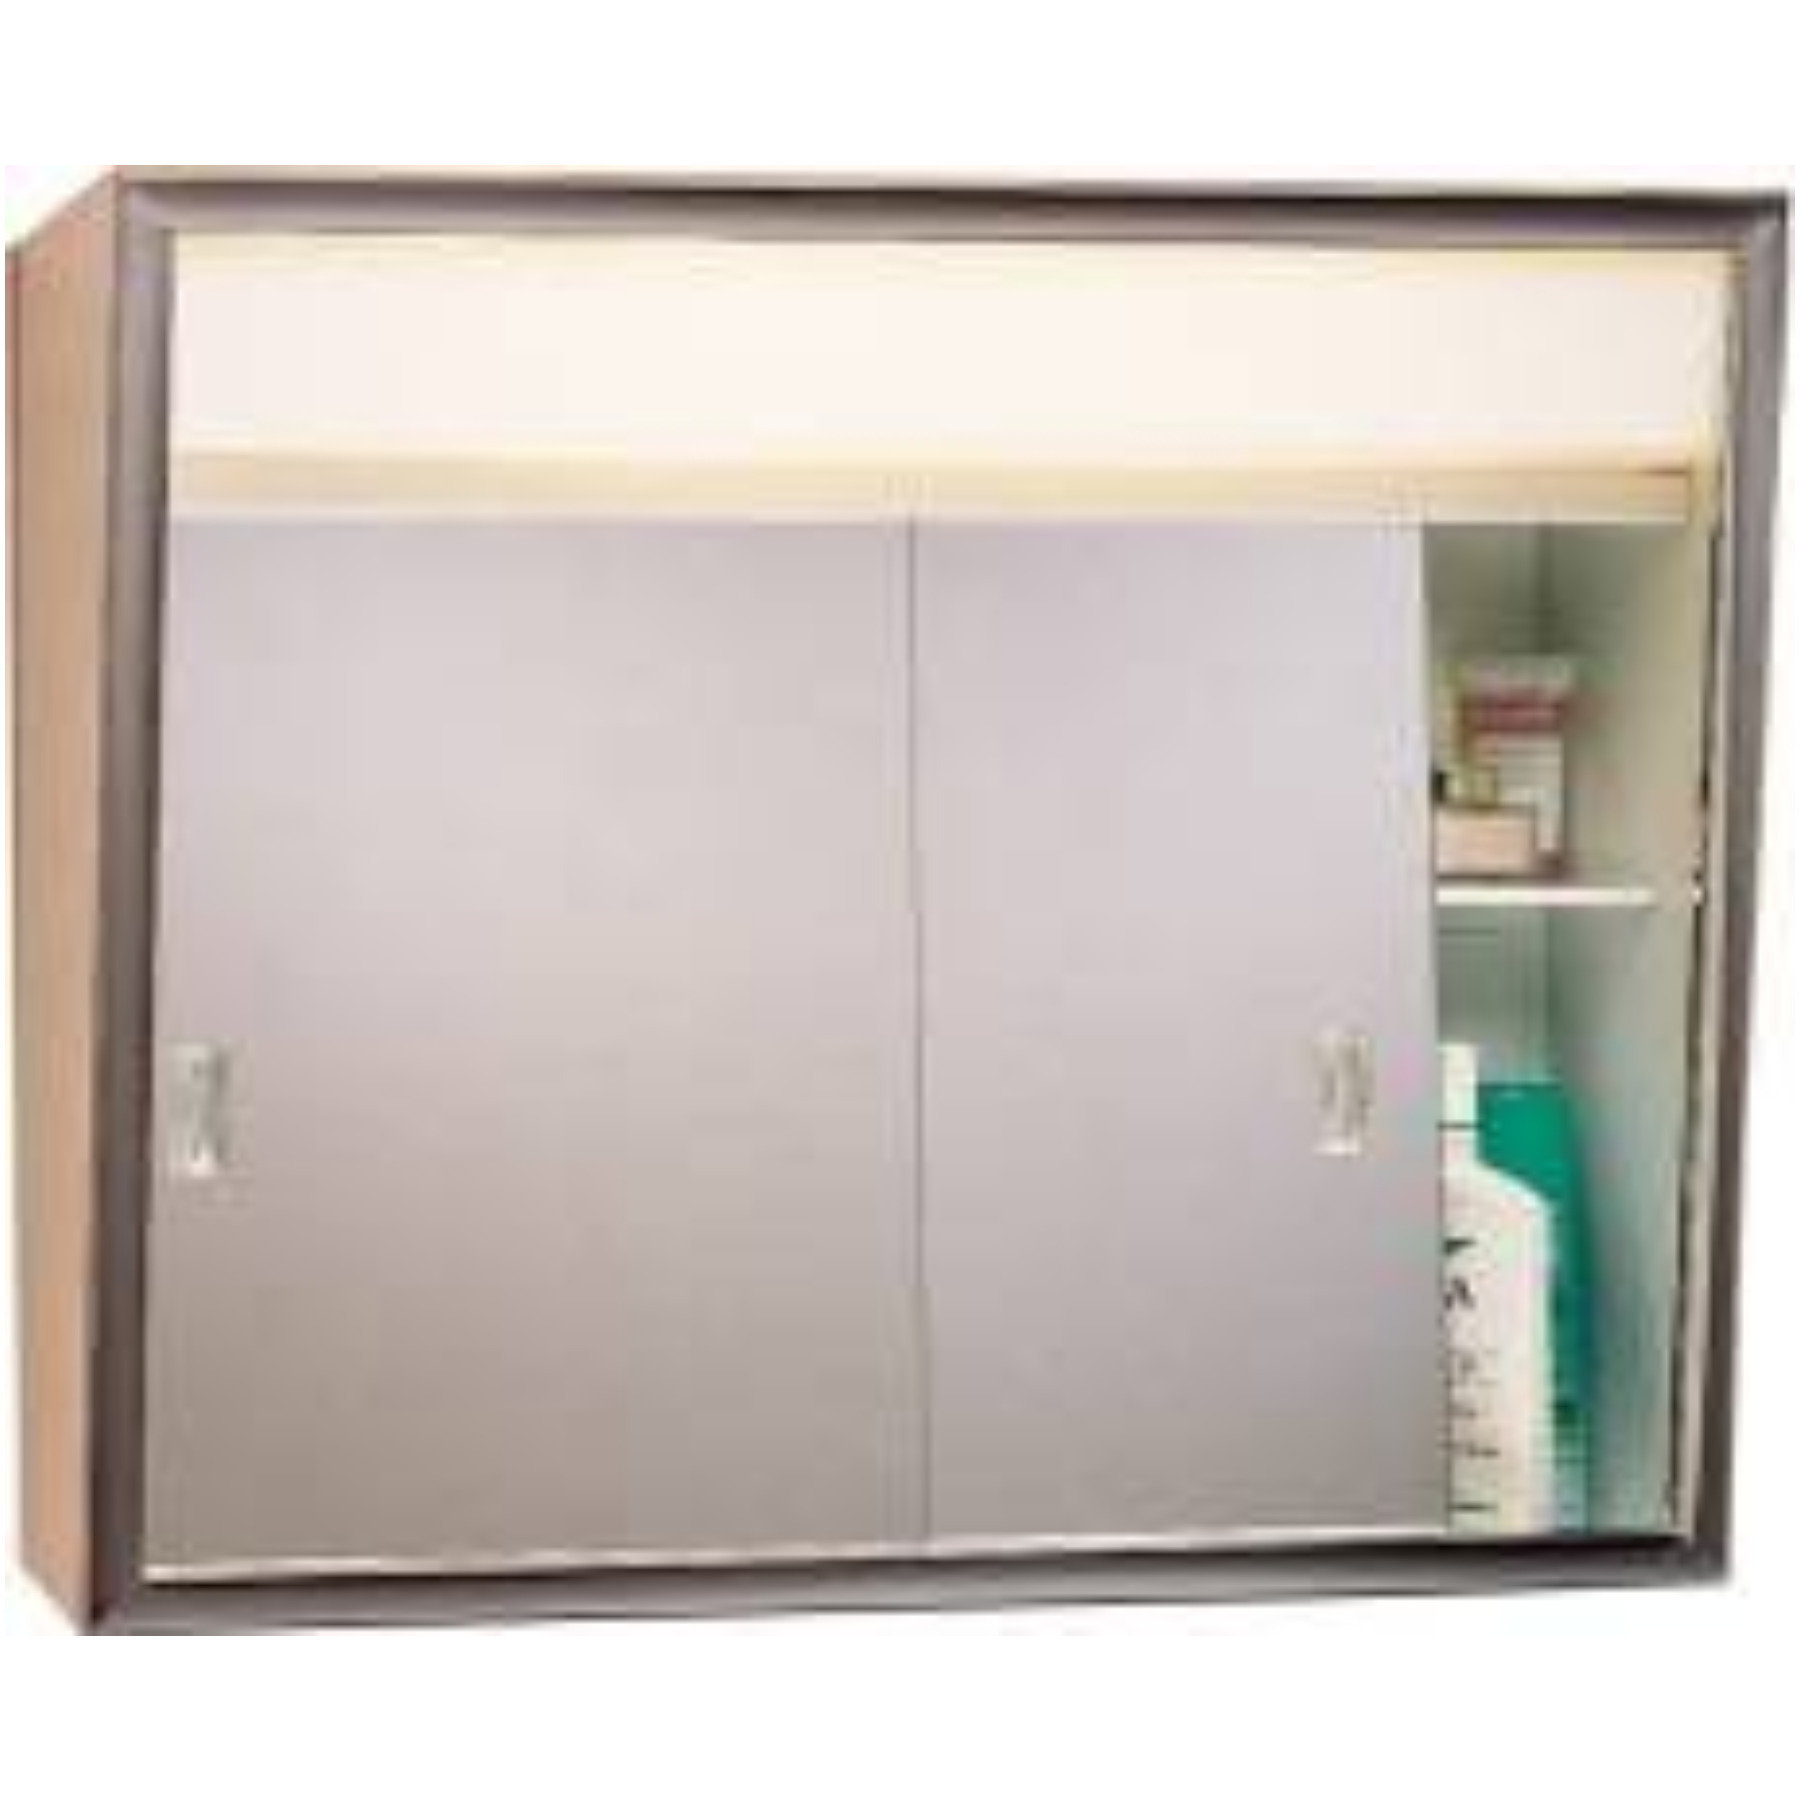 AMERICAN PRIDE 701L SERIES REPLACEMENT DOOR FOR SLIDING MEDICINE CABINET